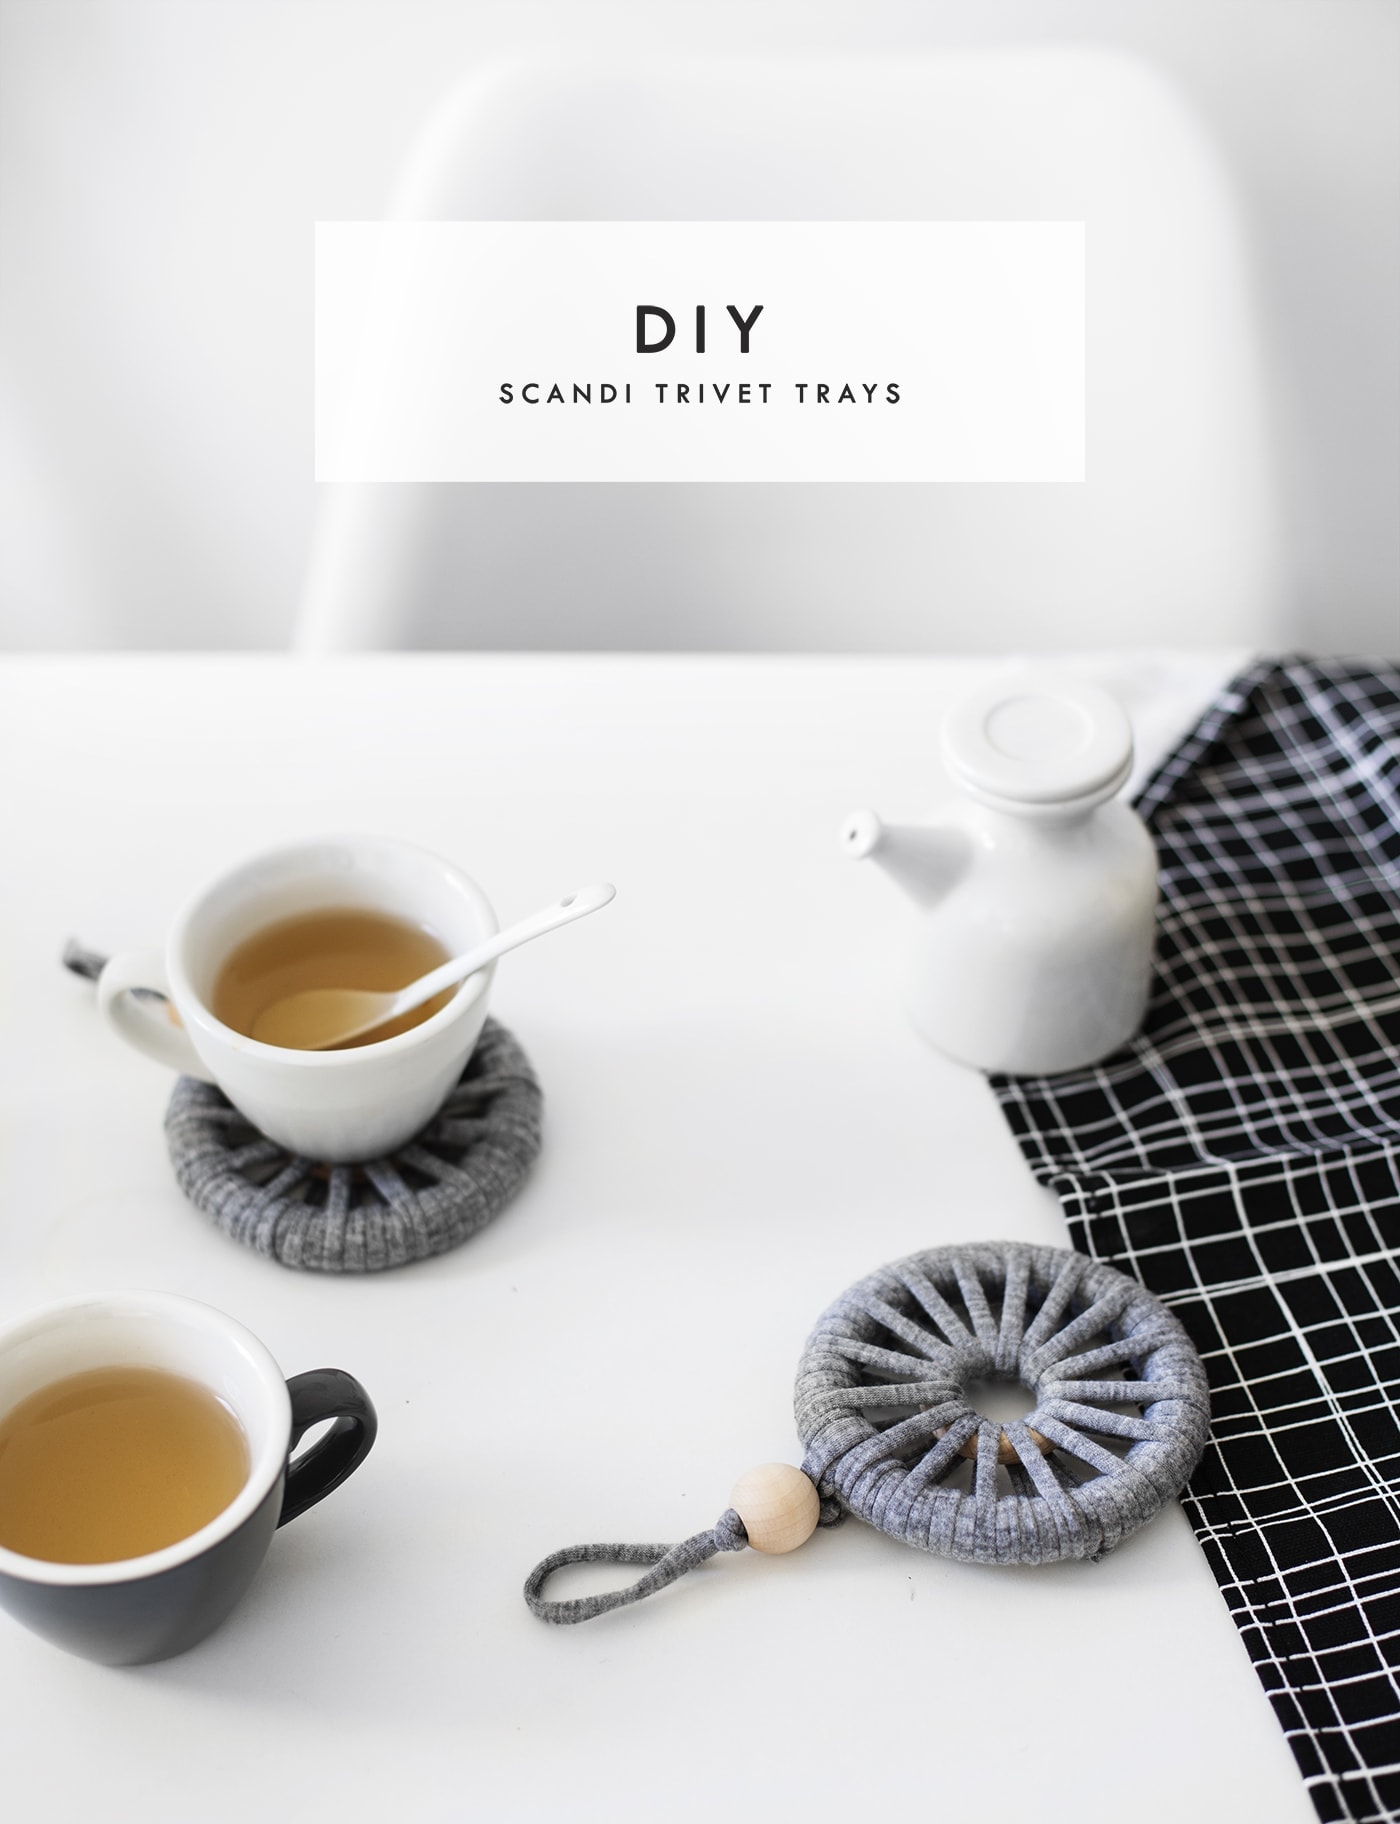 diy-scandi-trivet-tray-home-ideas-craft-ideas